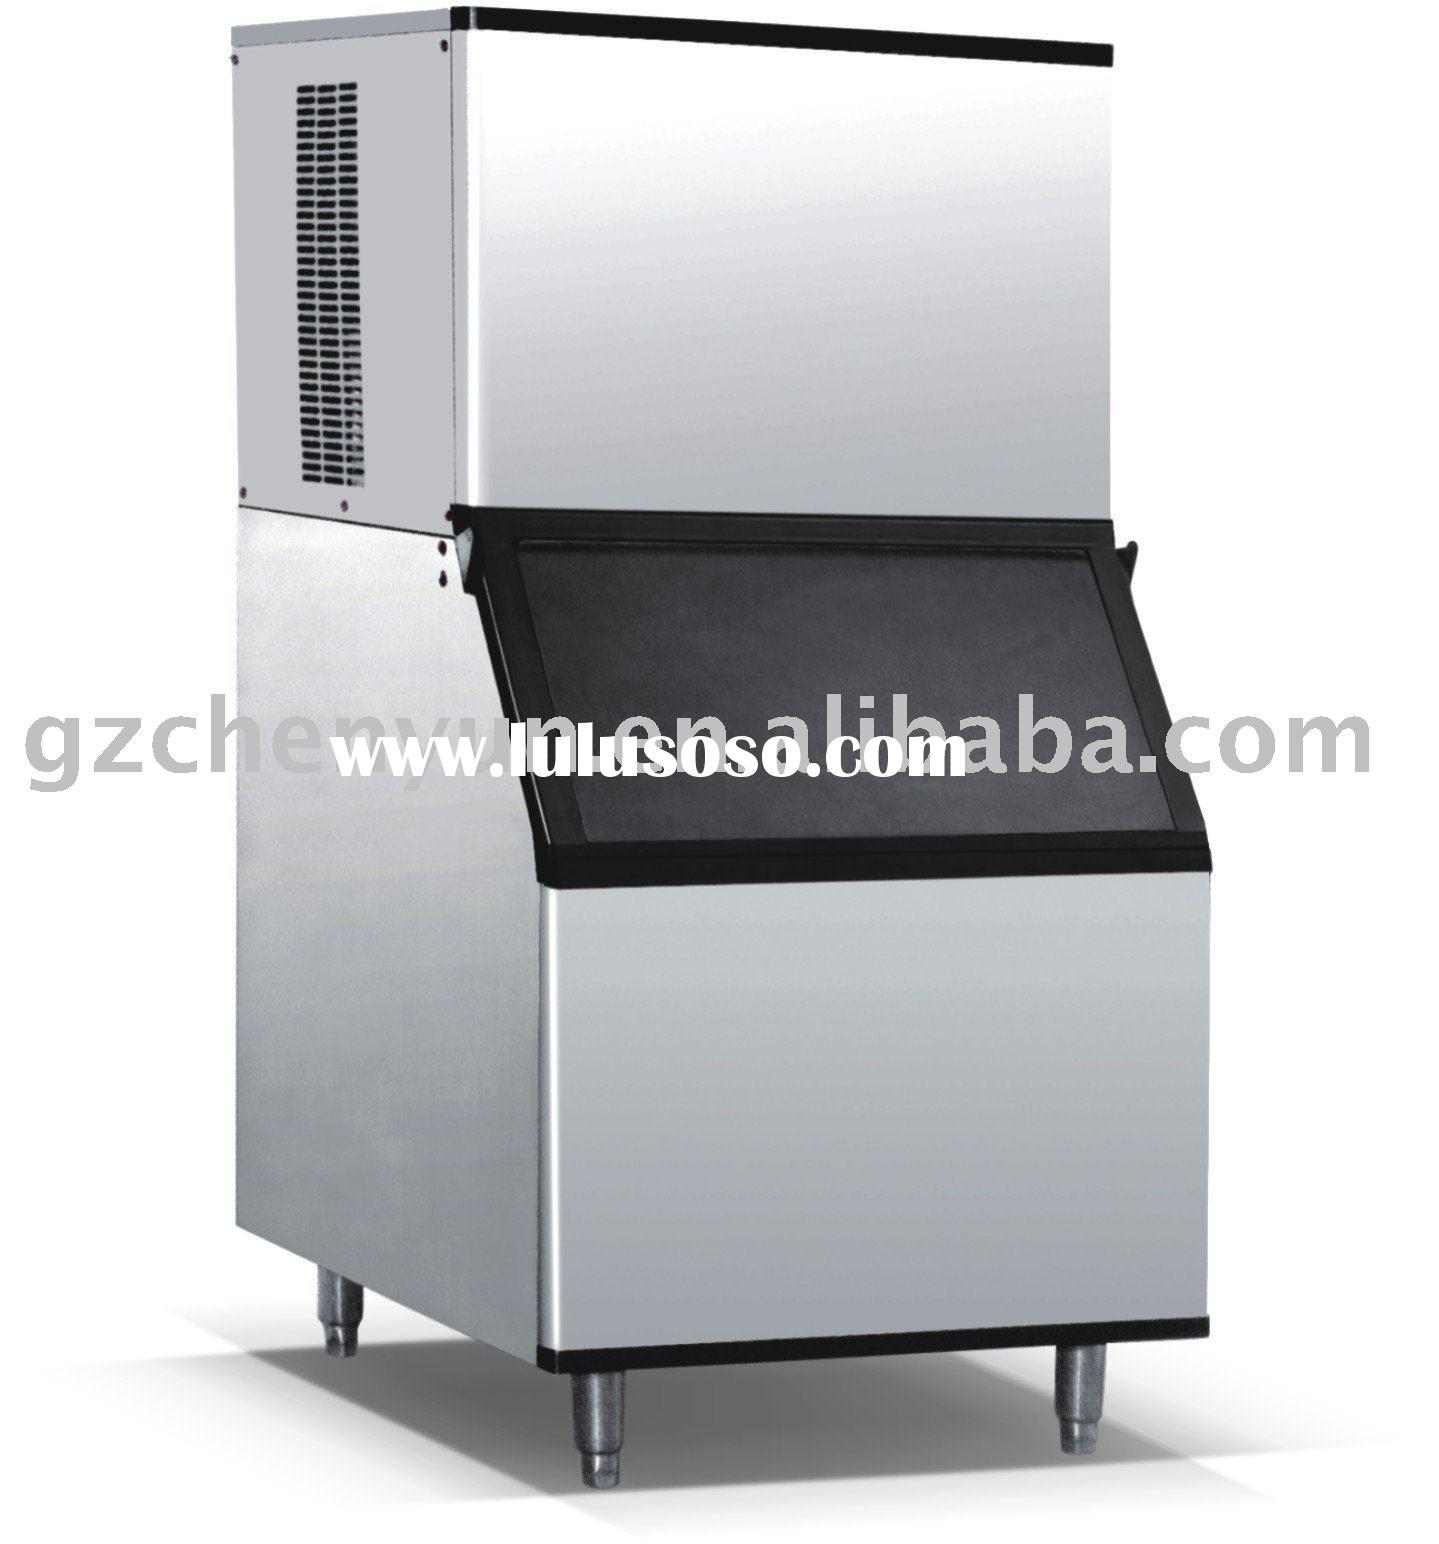 Image Result For Commercial Ice Makers For Sale